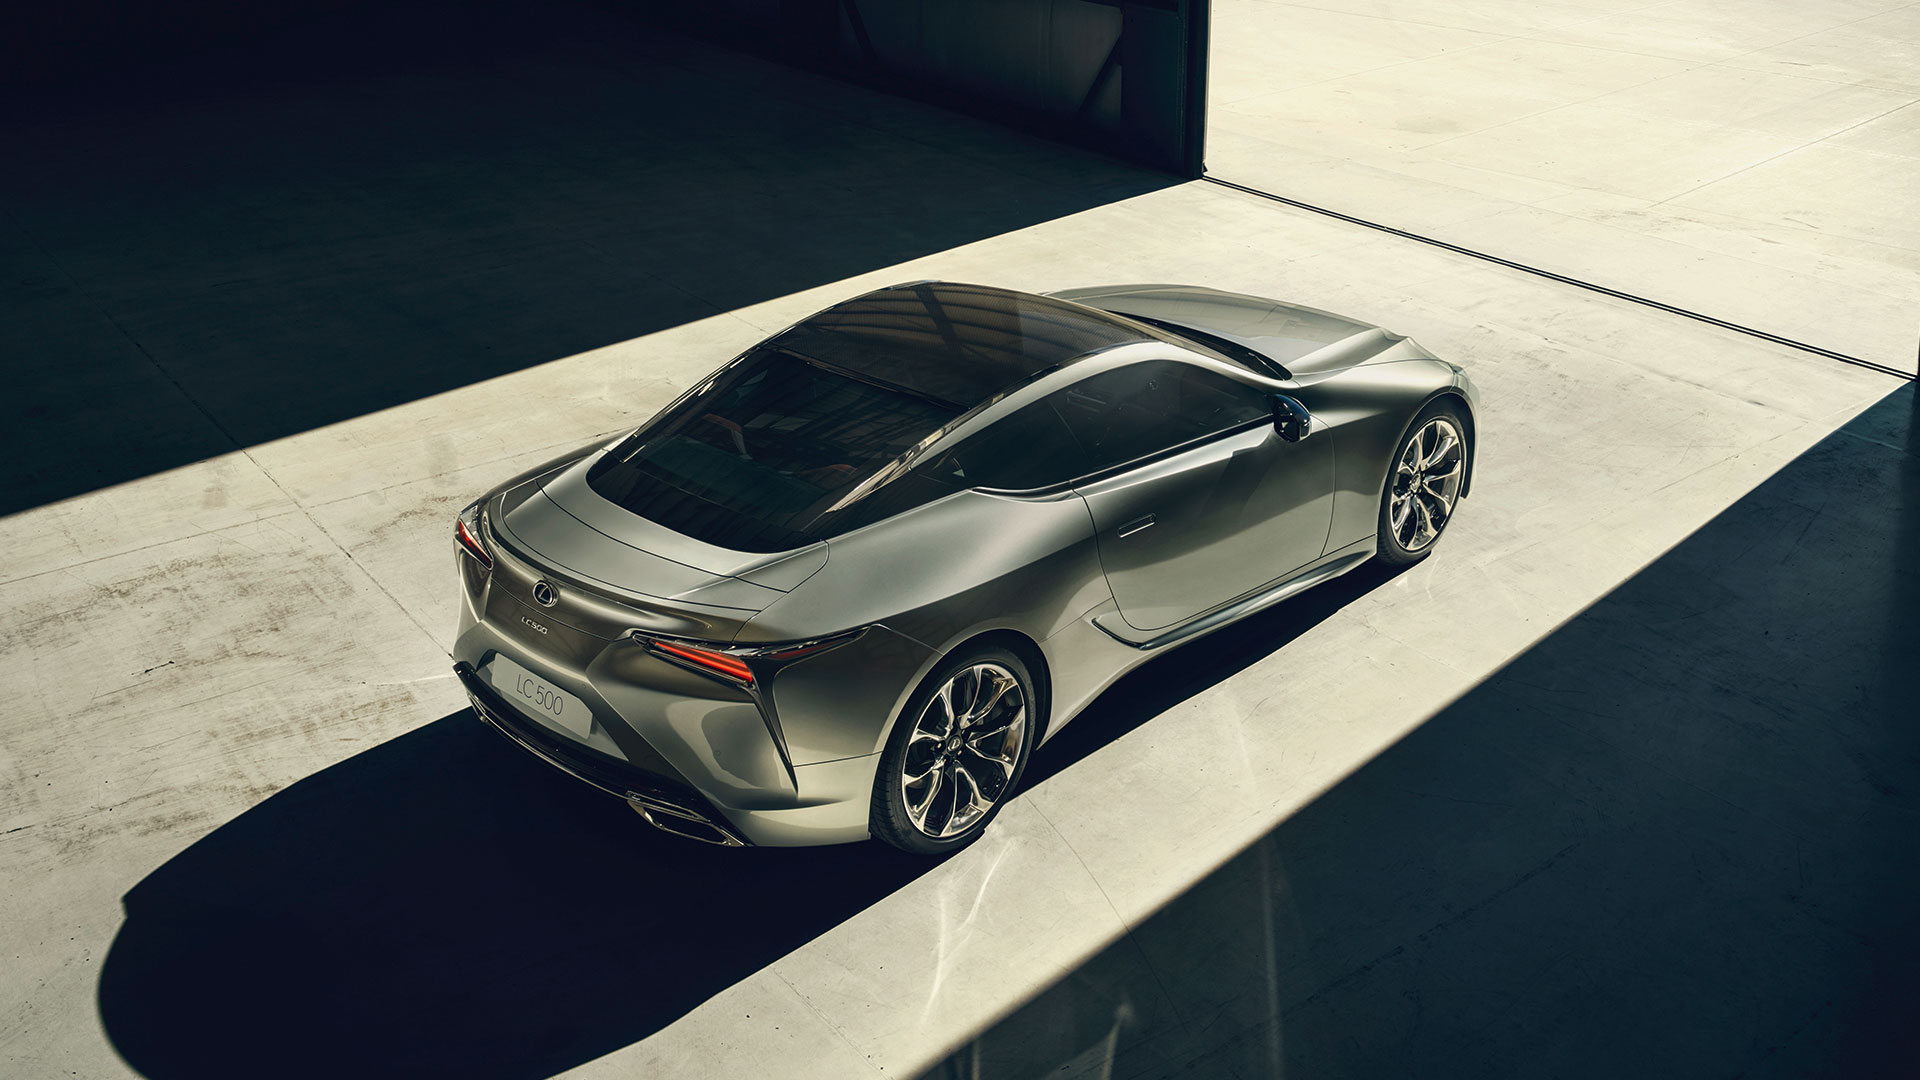 2017 lexus lc 500 next steps personalise